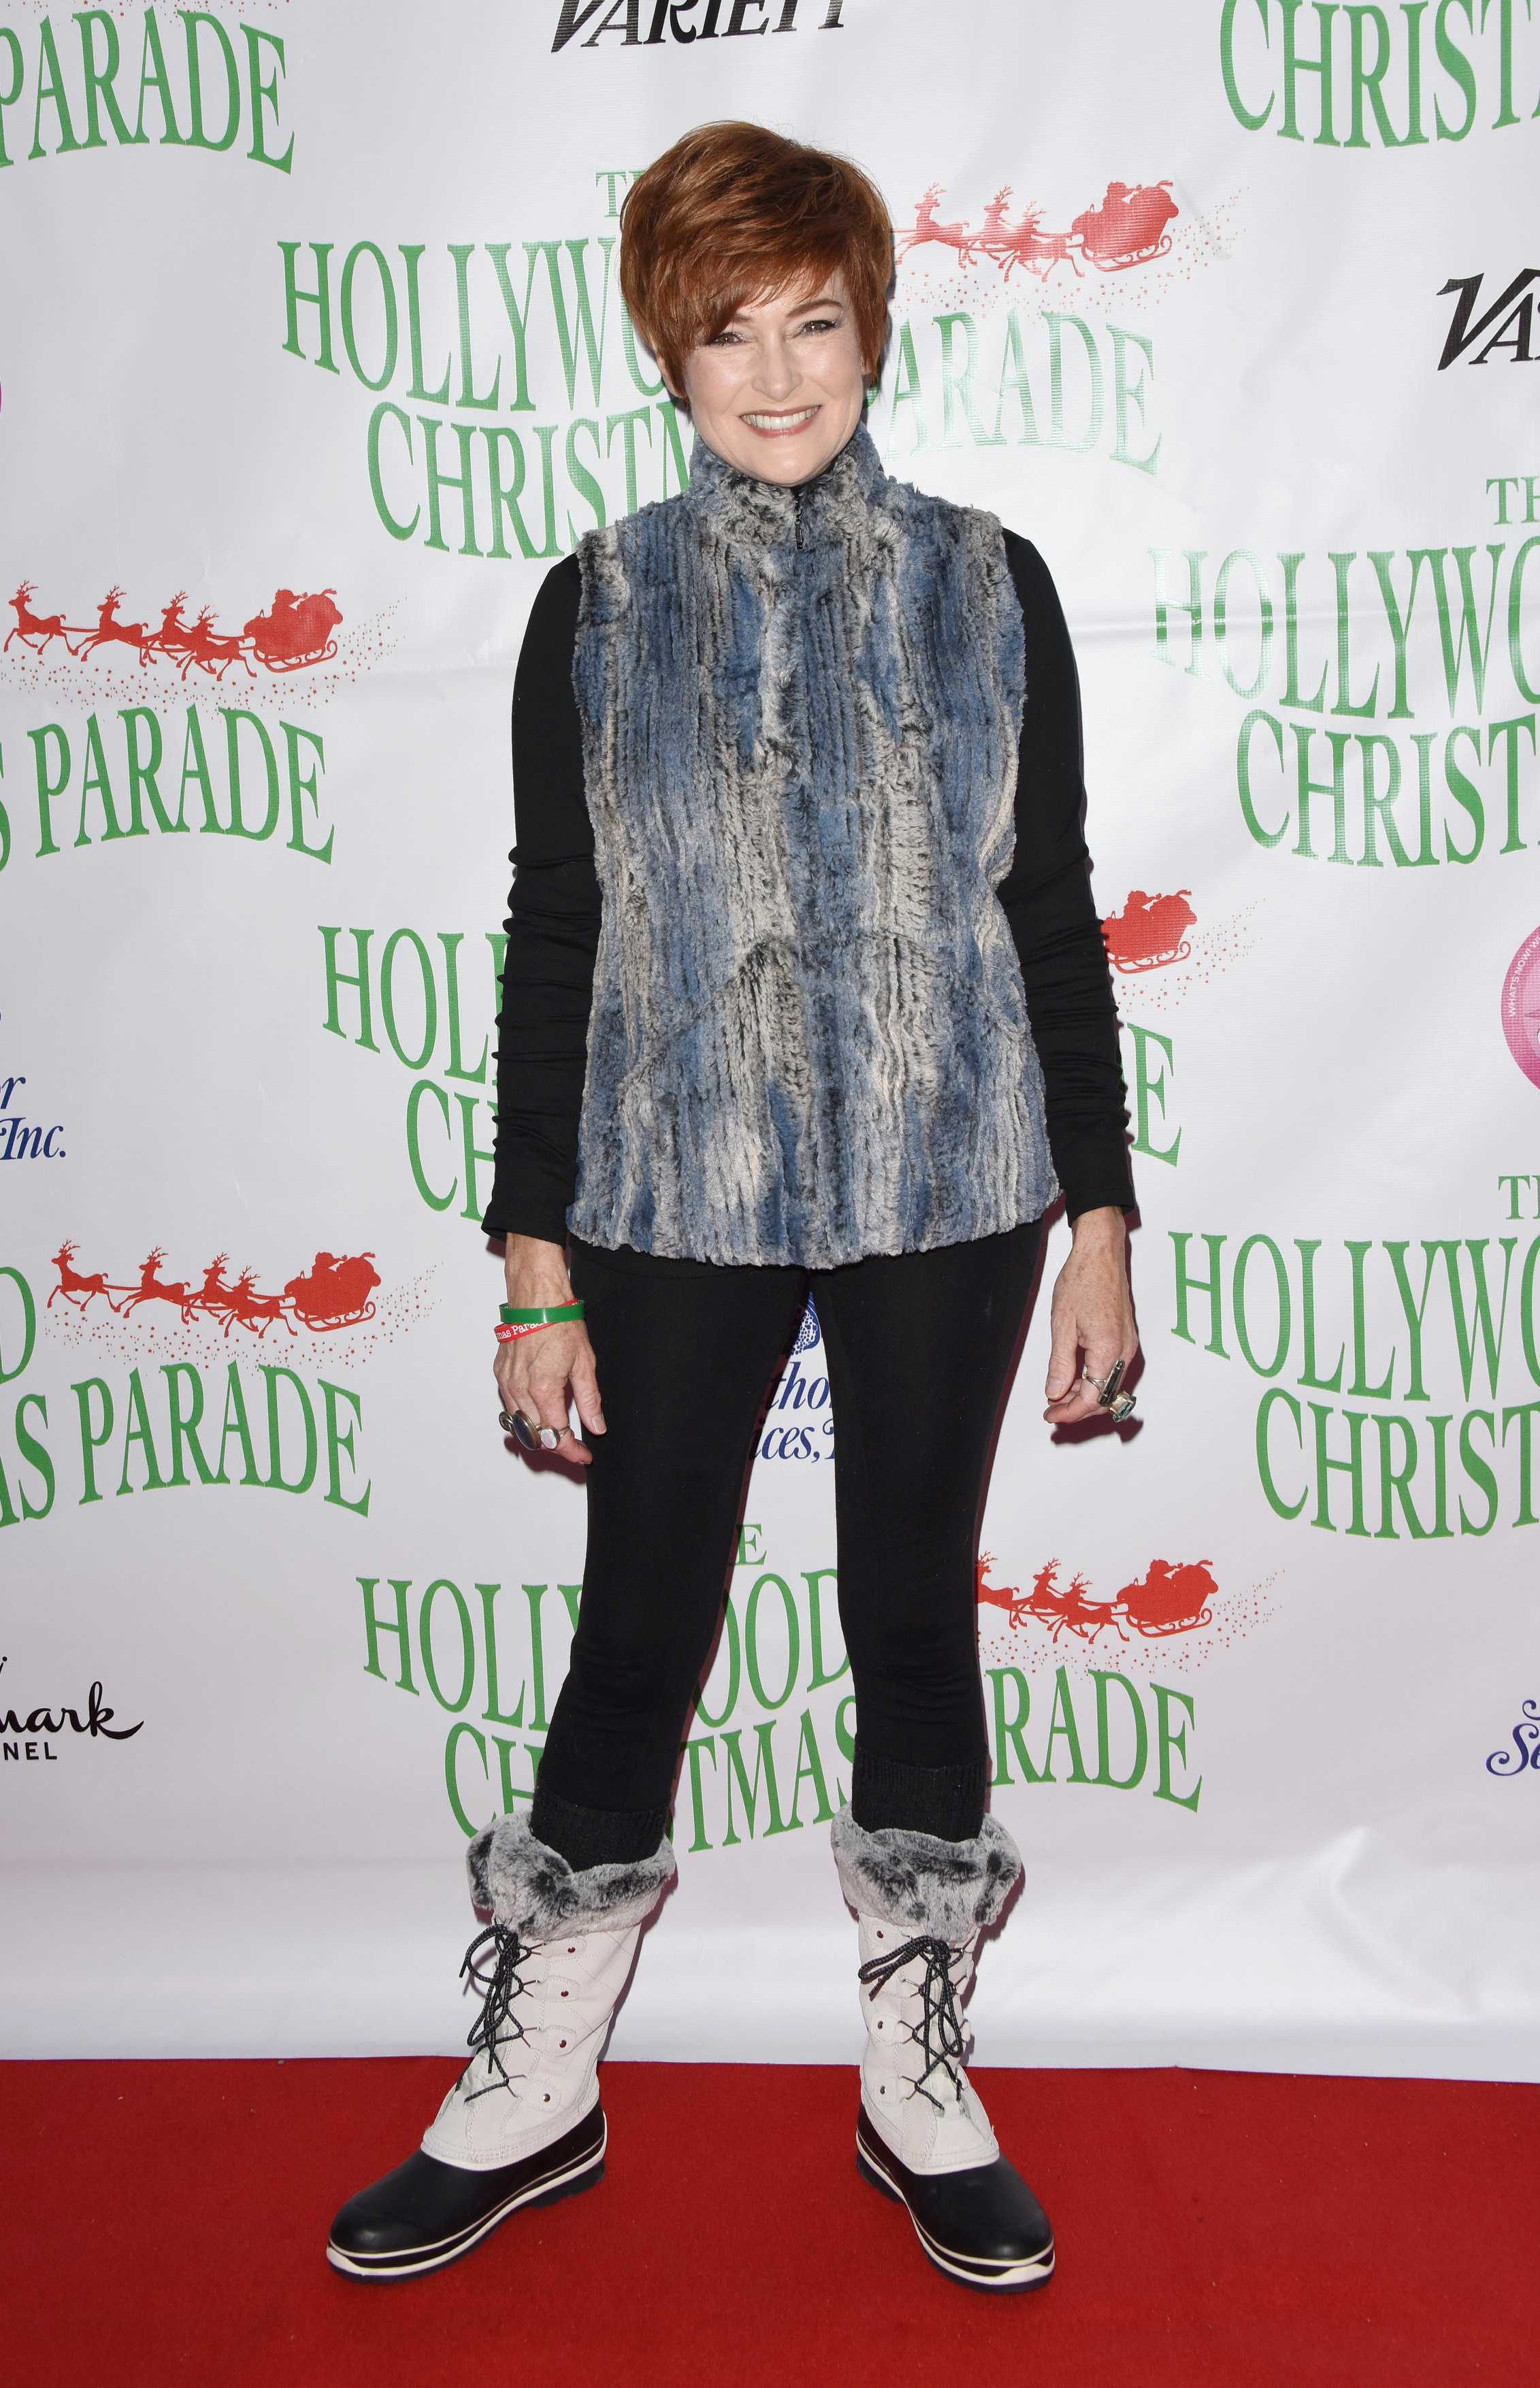 Carolyn Hennesy attends the 88th annual Hollywood Christmas Parade